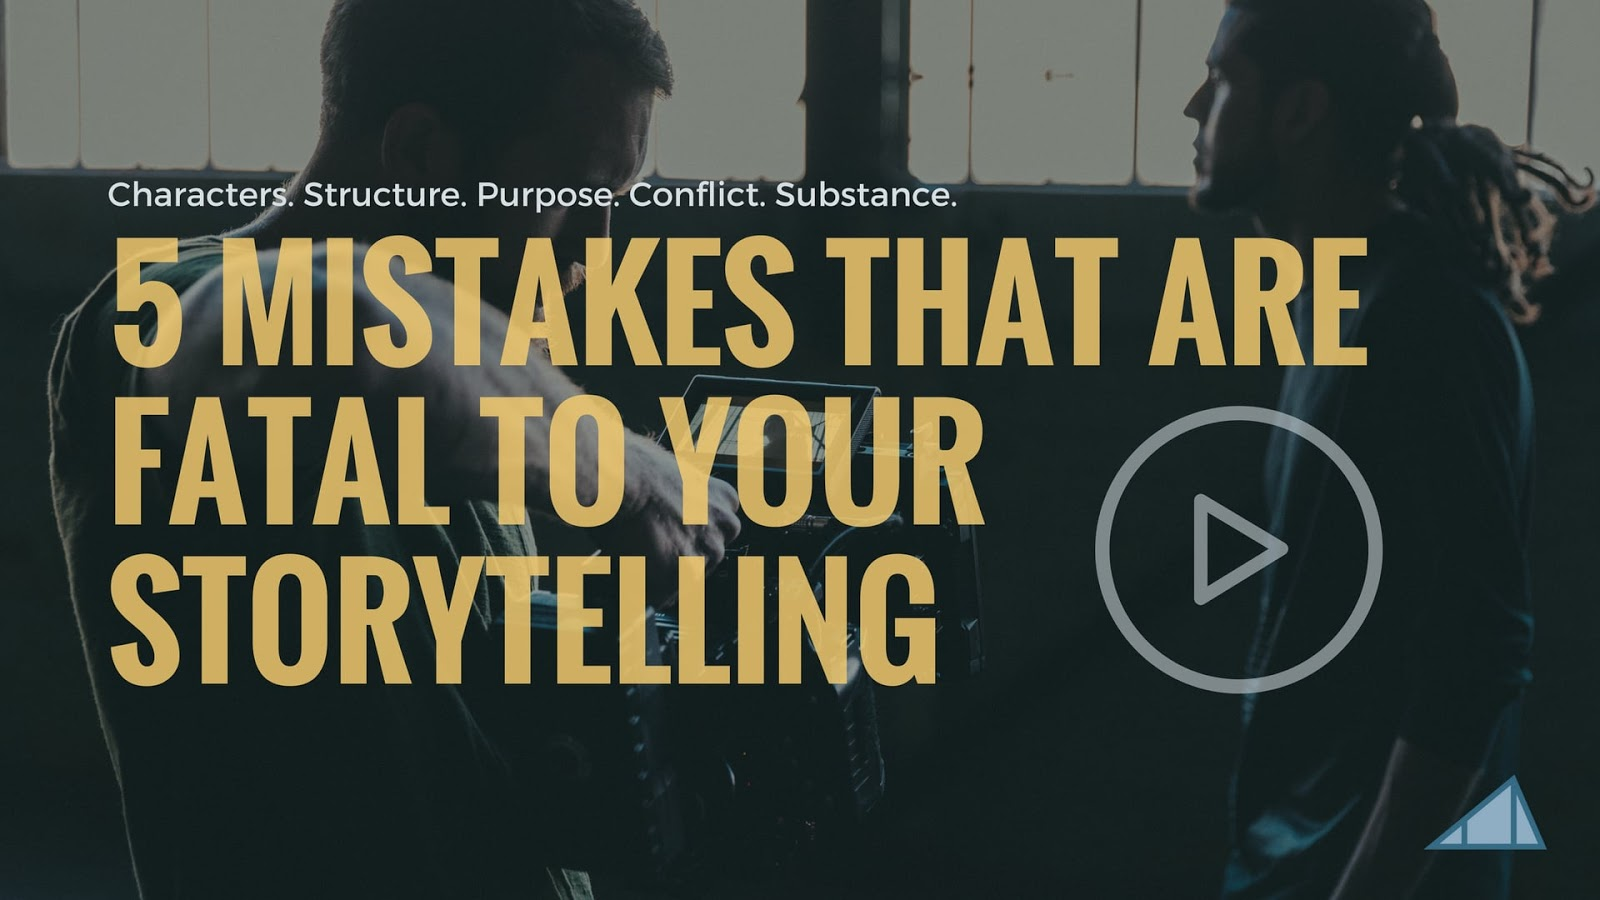 5 Mistakes That Are Fatal To The Storyteller